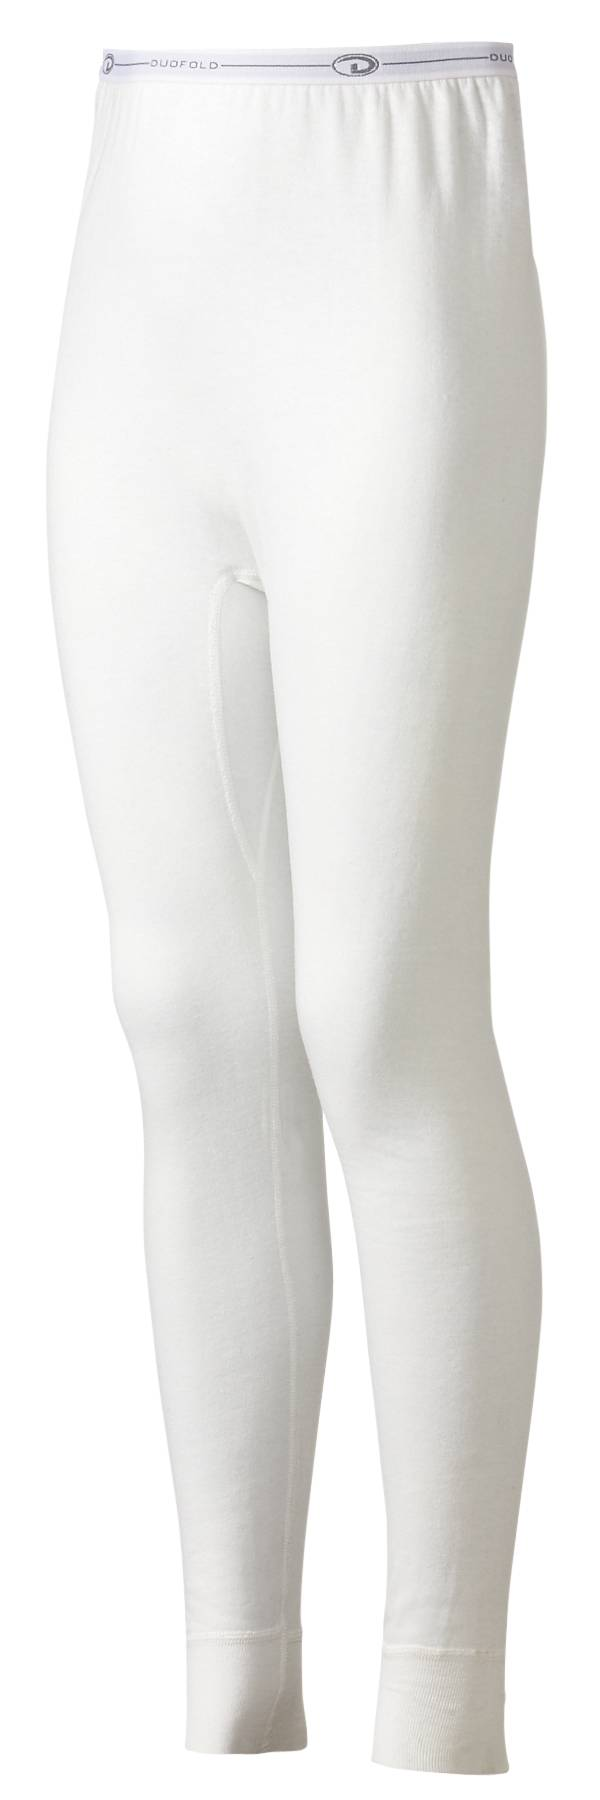 Duofold Youth Insulayer Pant product image